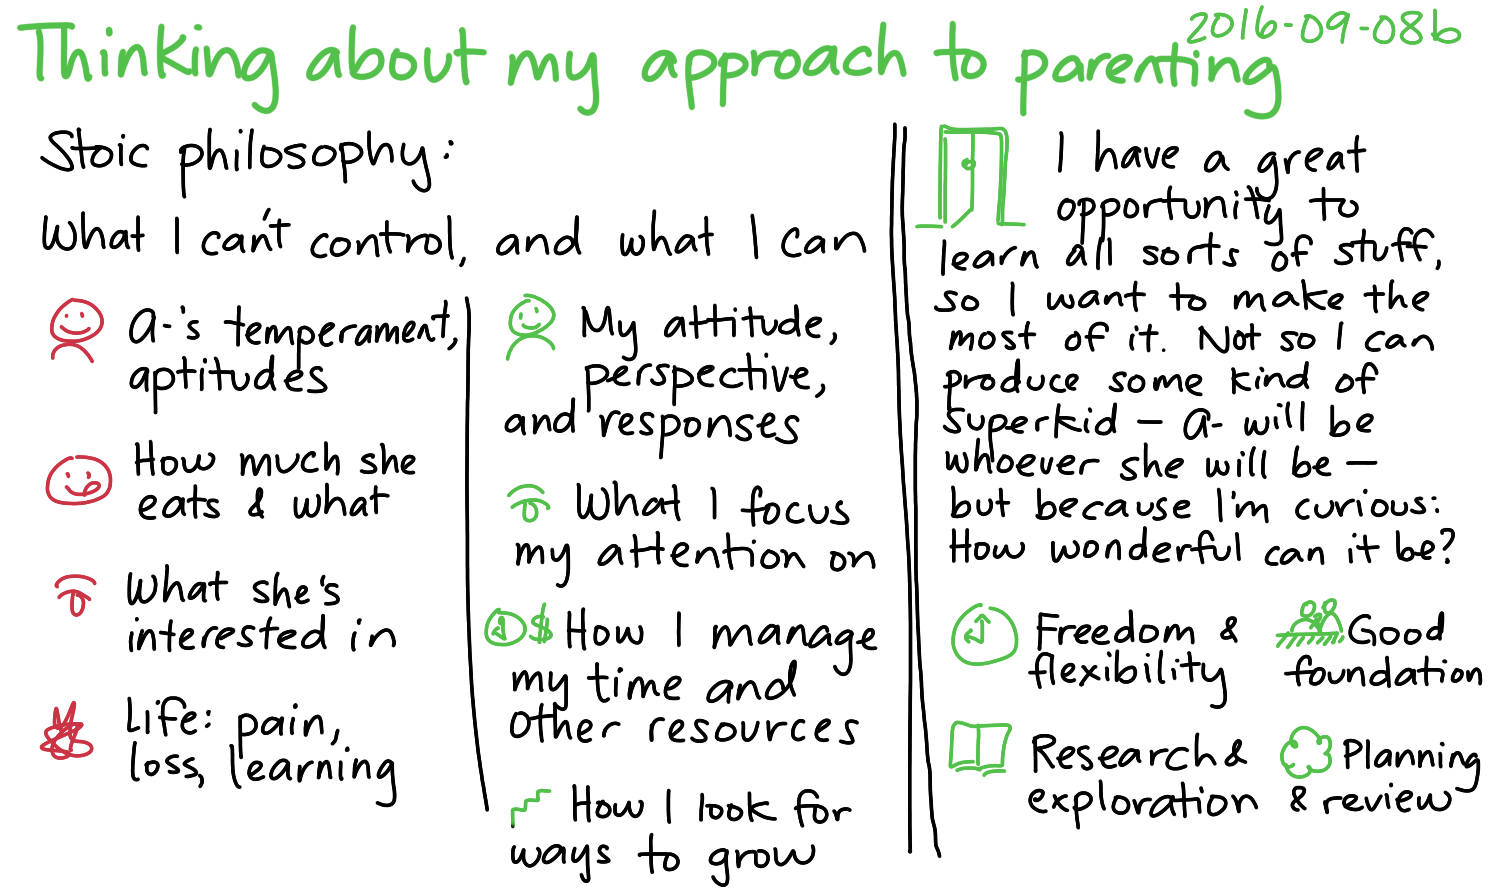 2016-09-08b Thinking about my approach to parenting #parenting #philosophy.png